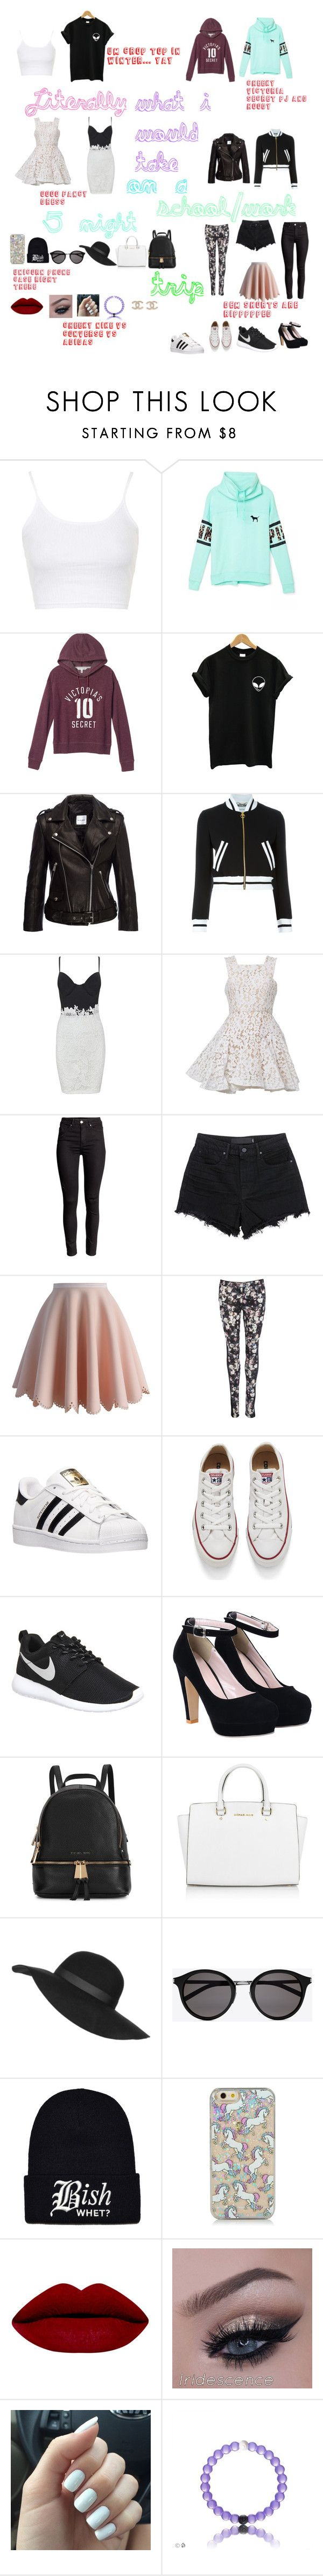 """""""cheeky trip ;)"""" by summer-maia ❤ liked on Polyvore featuring Topshop, Victoria's Secret, Moschino, Alex Perry, T By Alexander Wang, Chicwish, adidas, Converse, NIKE and Michael Kors"""